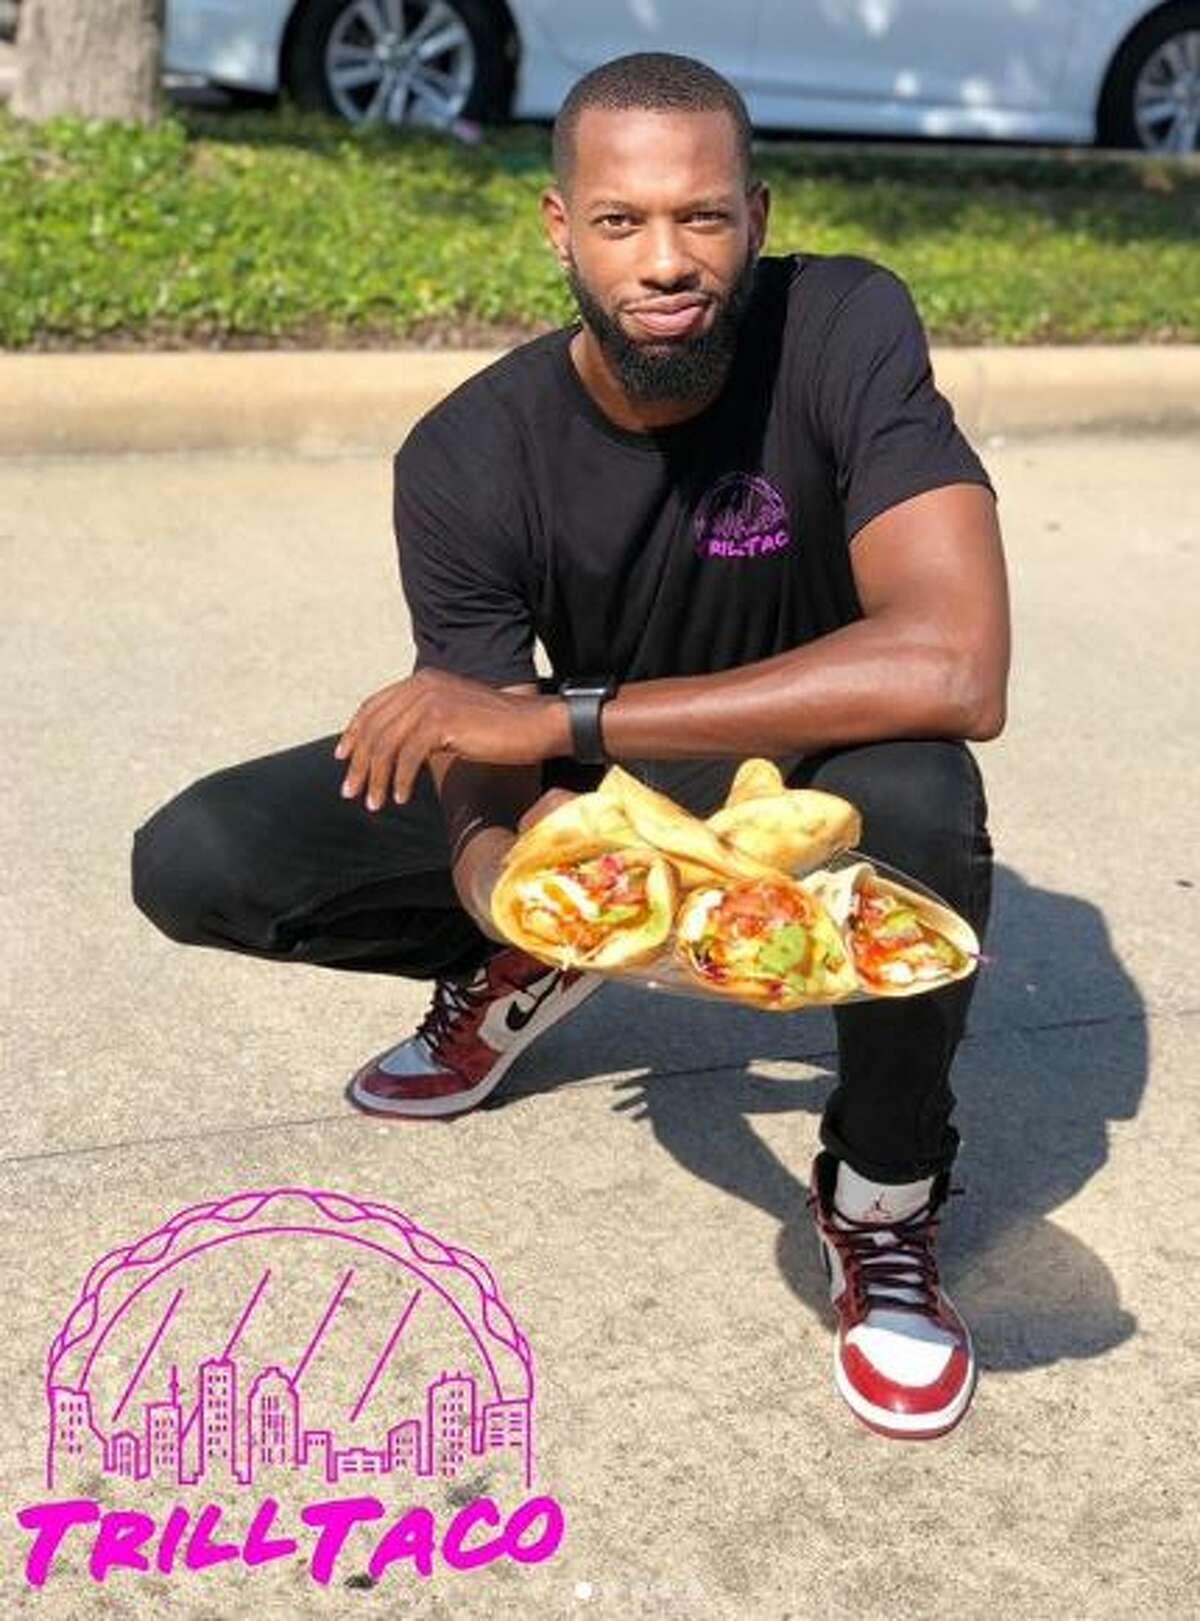 Owner Samuel Sykes, 26, prides himself on being recognized as a black-owned business, something that he said has resonated well among the community.